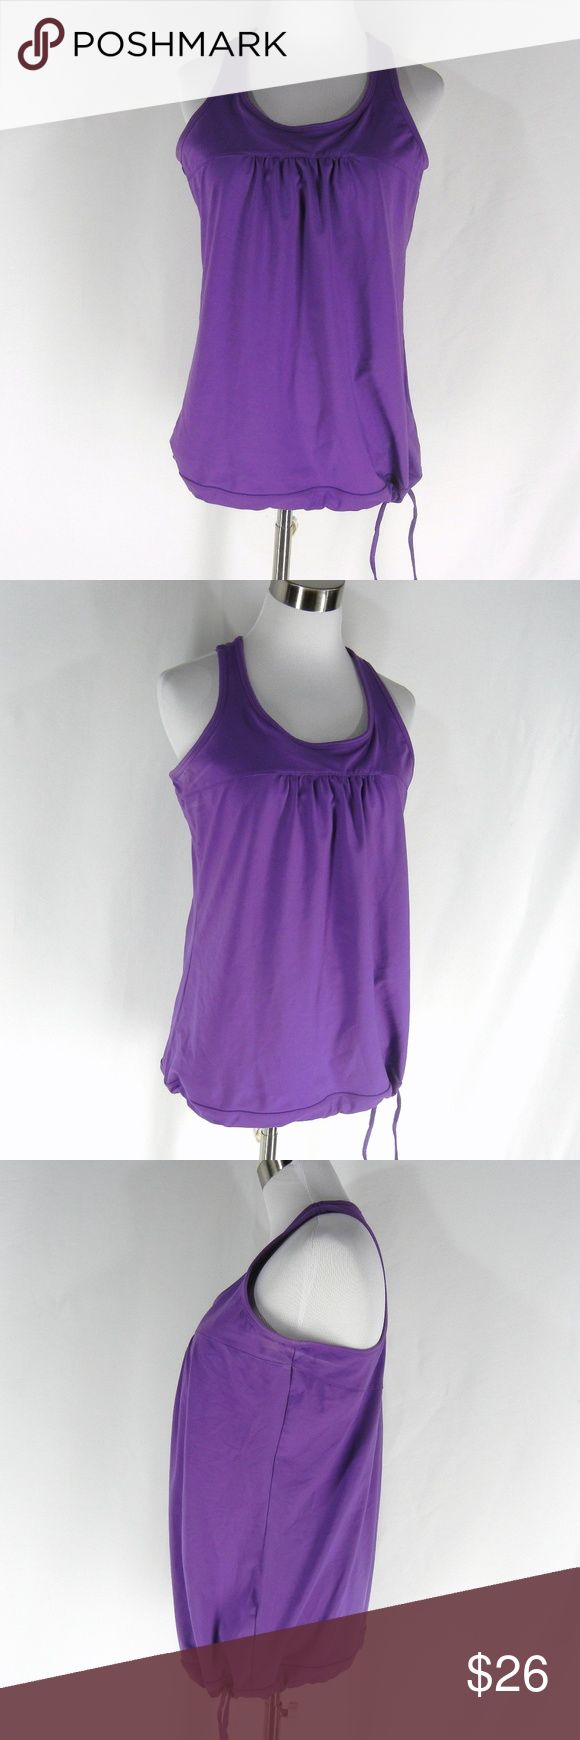 ATHLETA Shelf Bra Cup Tinker Tank Cami Top L THLETA Bra Cup Tinker Tank Top in solid purple.  Scoop neck, racerback, drawstring cinch hem, lots of stretch.  Excellent condition with no flaws.  Machine wash.  Size L. Athleta Tops Tank Tops